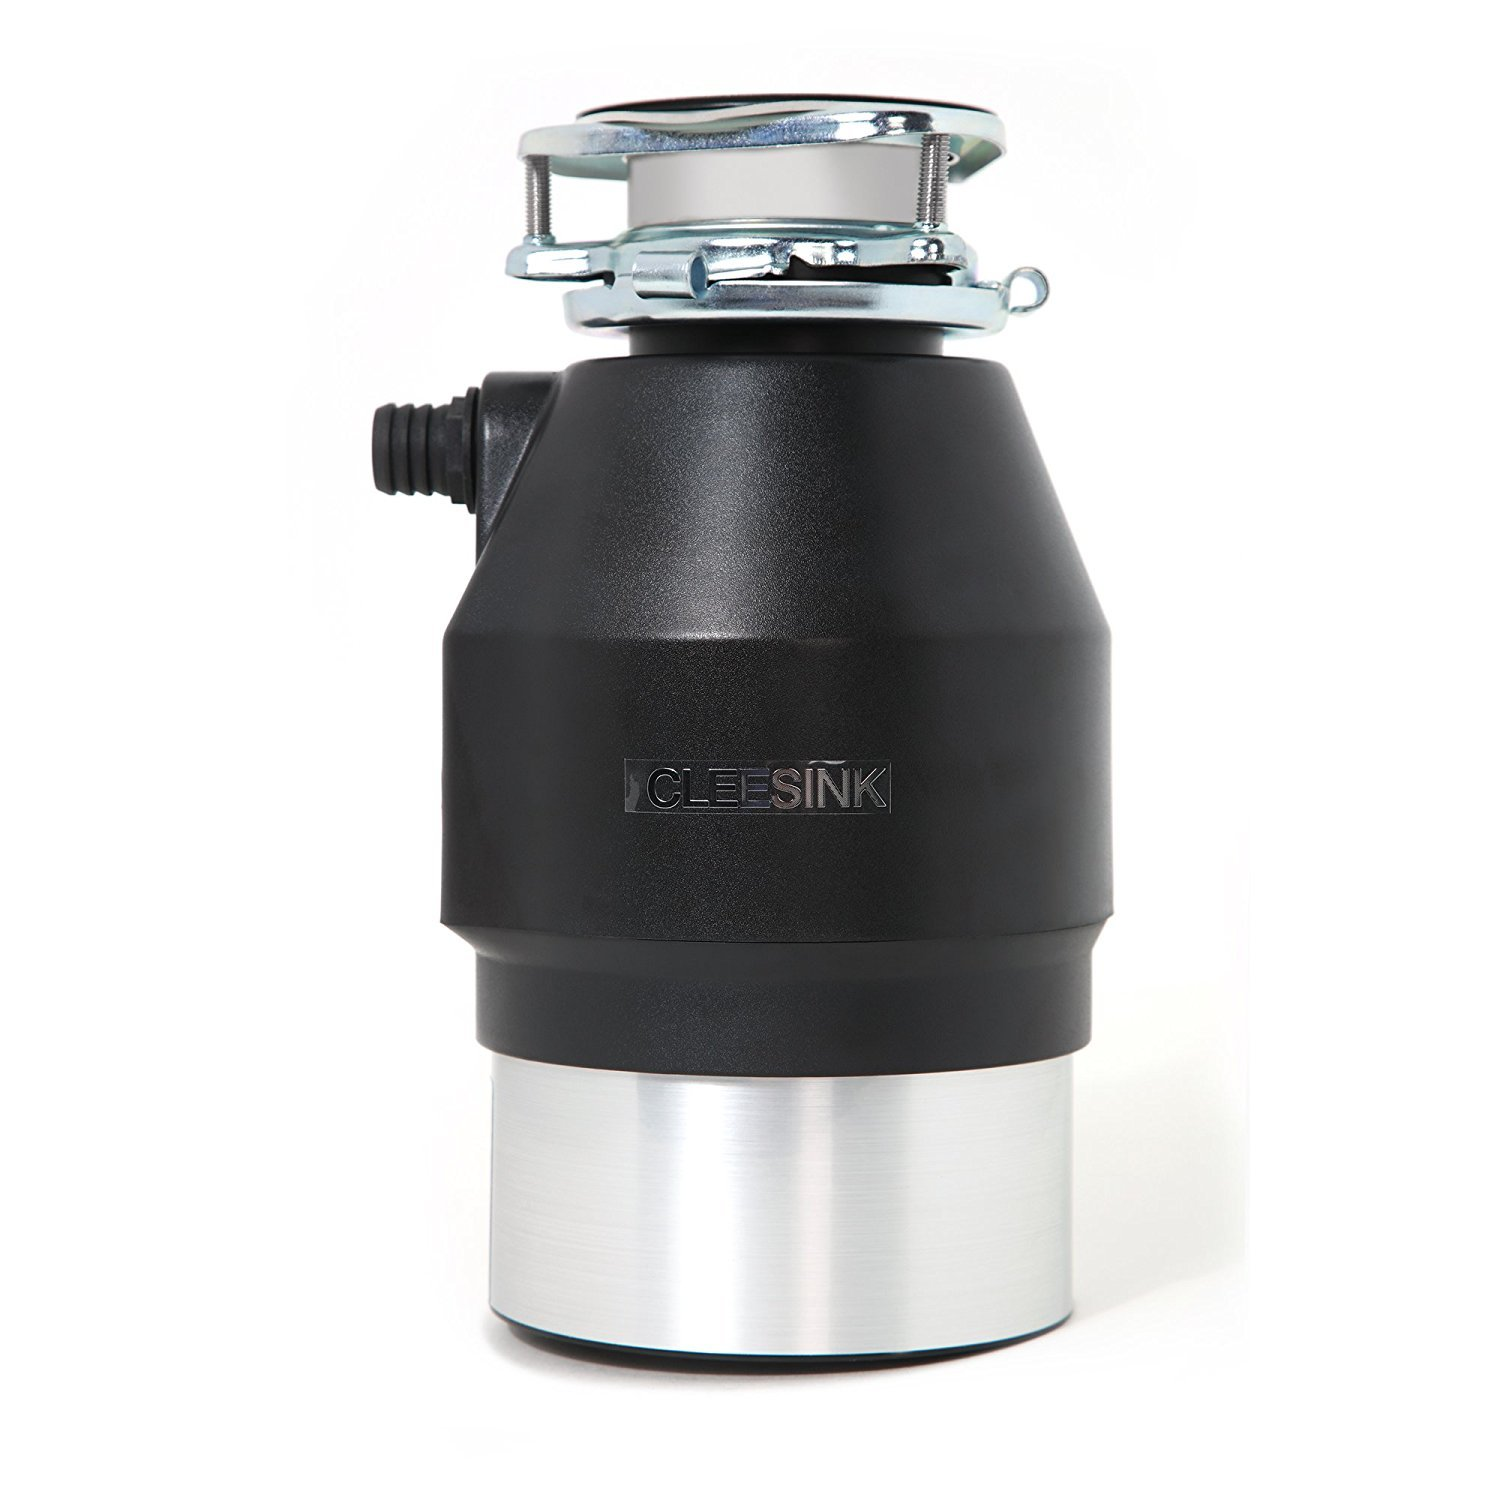 Cleesink 1 HP Powerful Food Waste Disposal, Kitchen Garbage Countunues Feed Disposal, 1.0 Horsepower, AC Motor